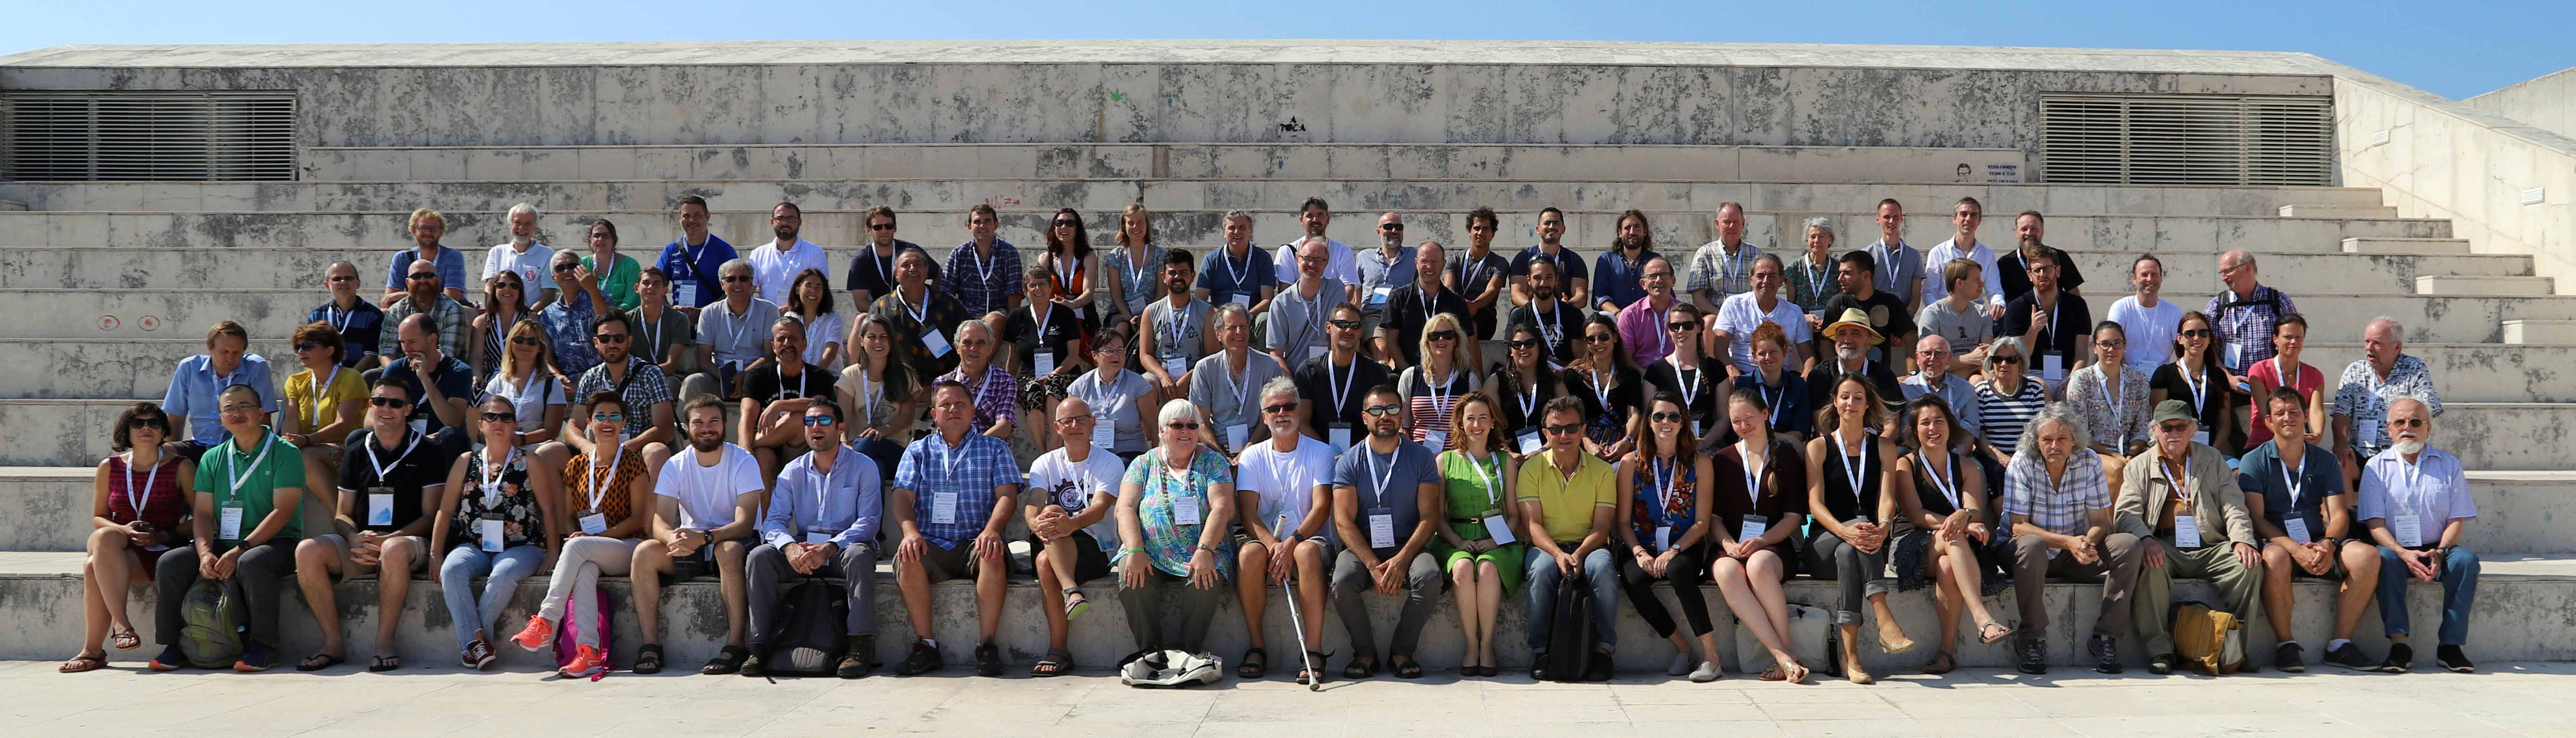 24ICSB-first-group-photo-compressed